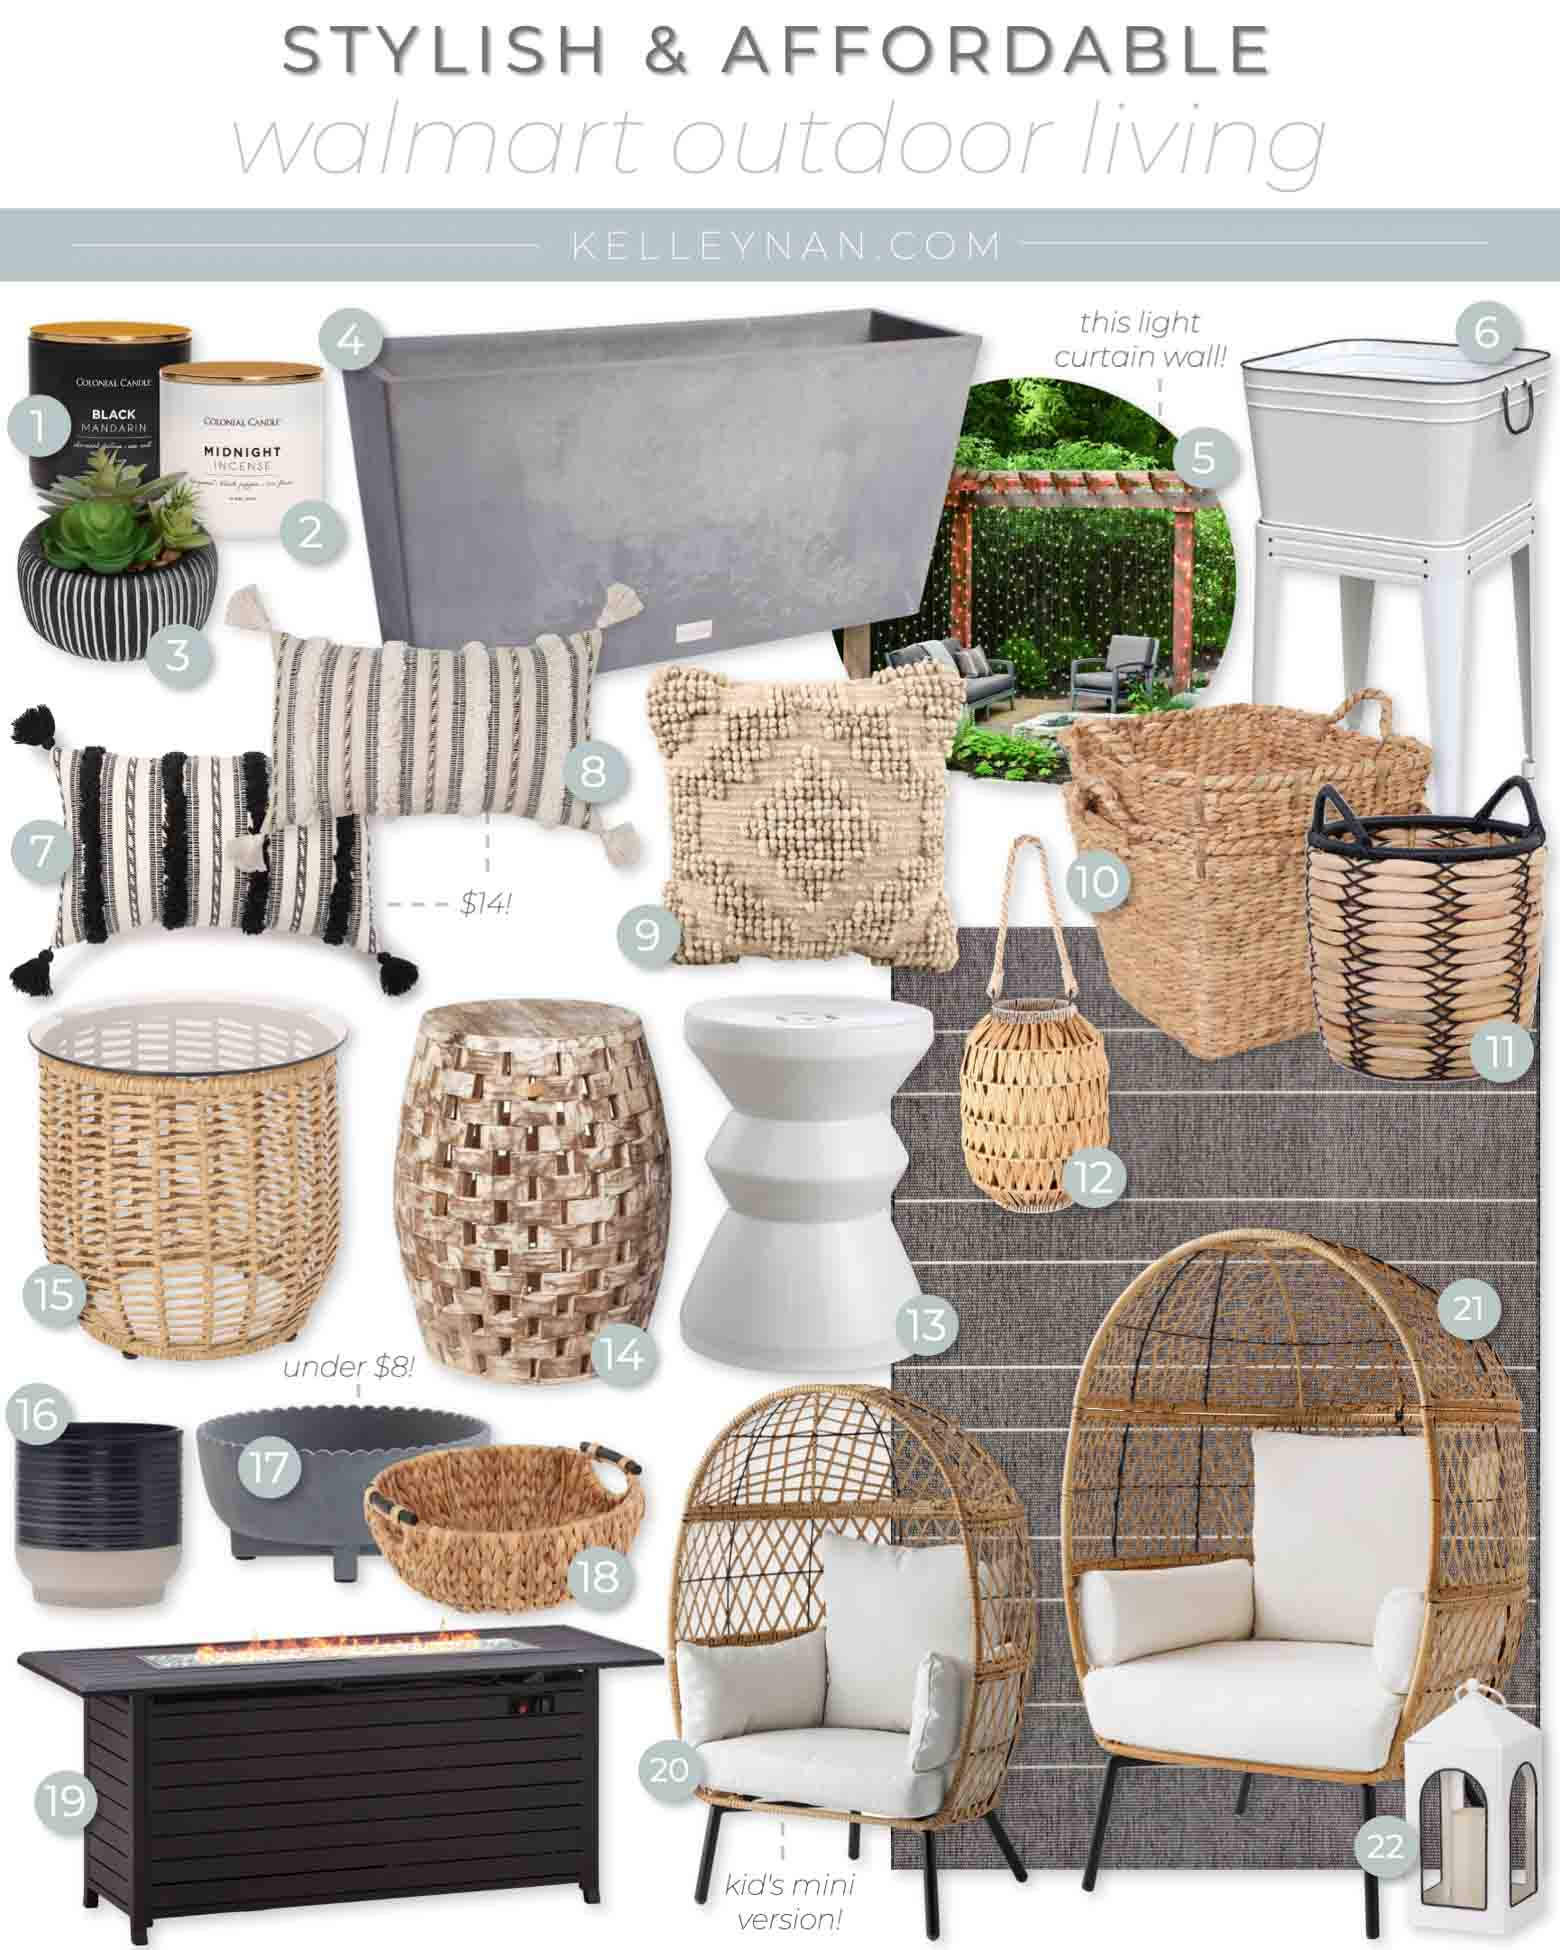 Walmart Outdoor Living and Affordable Decor